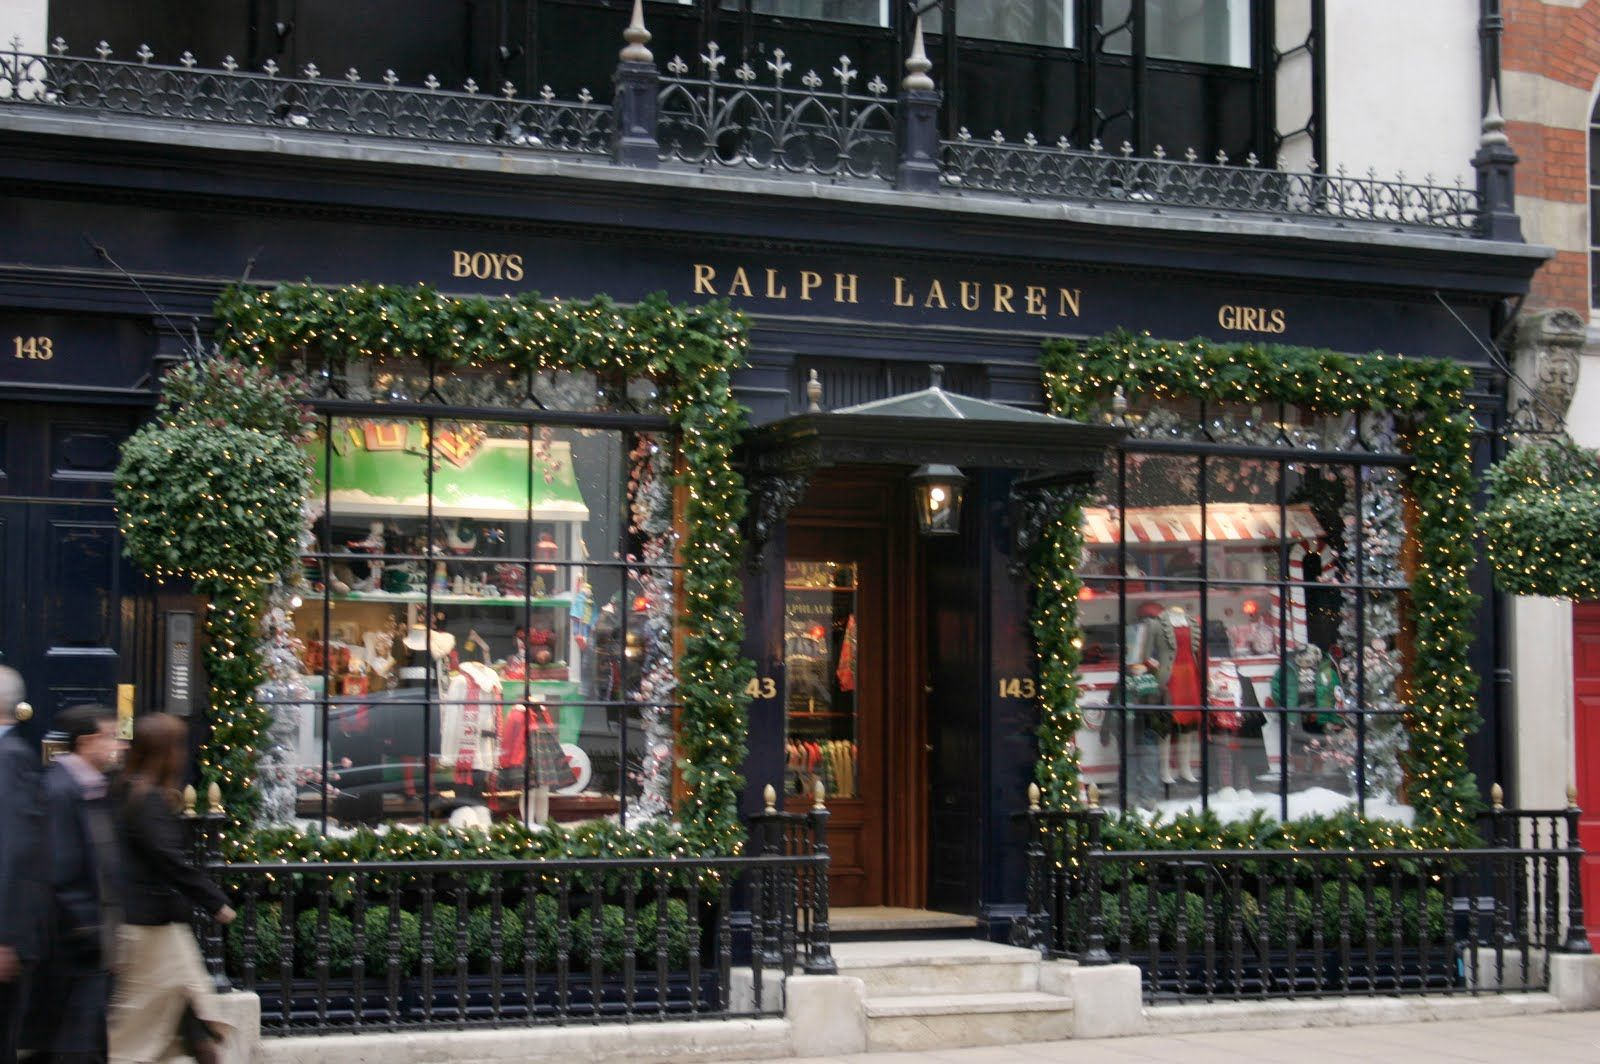 Totally makes me want to paint my outside windows black and flank them in natural garland and lights.  Thank you Ralph for the inspiration.